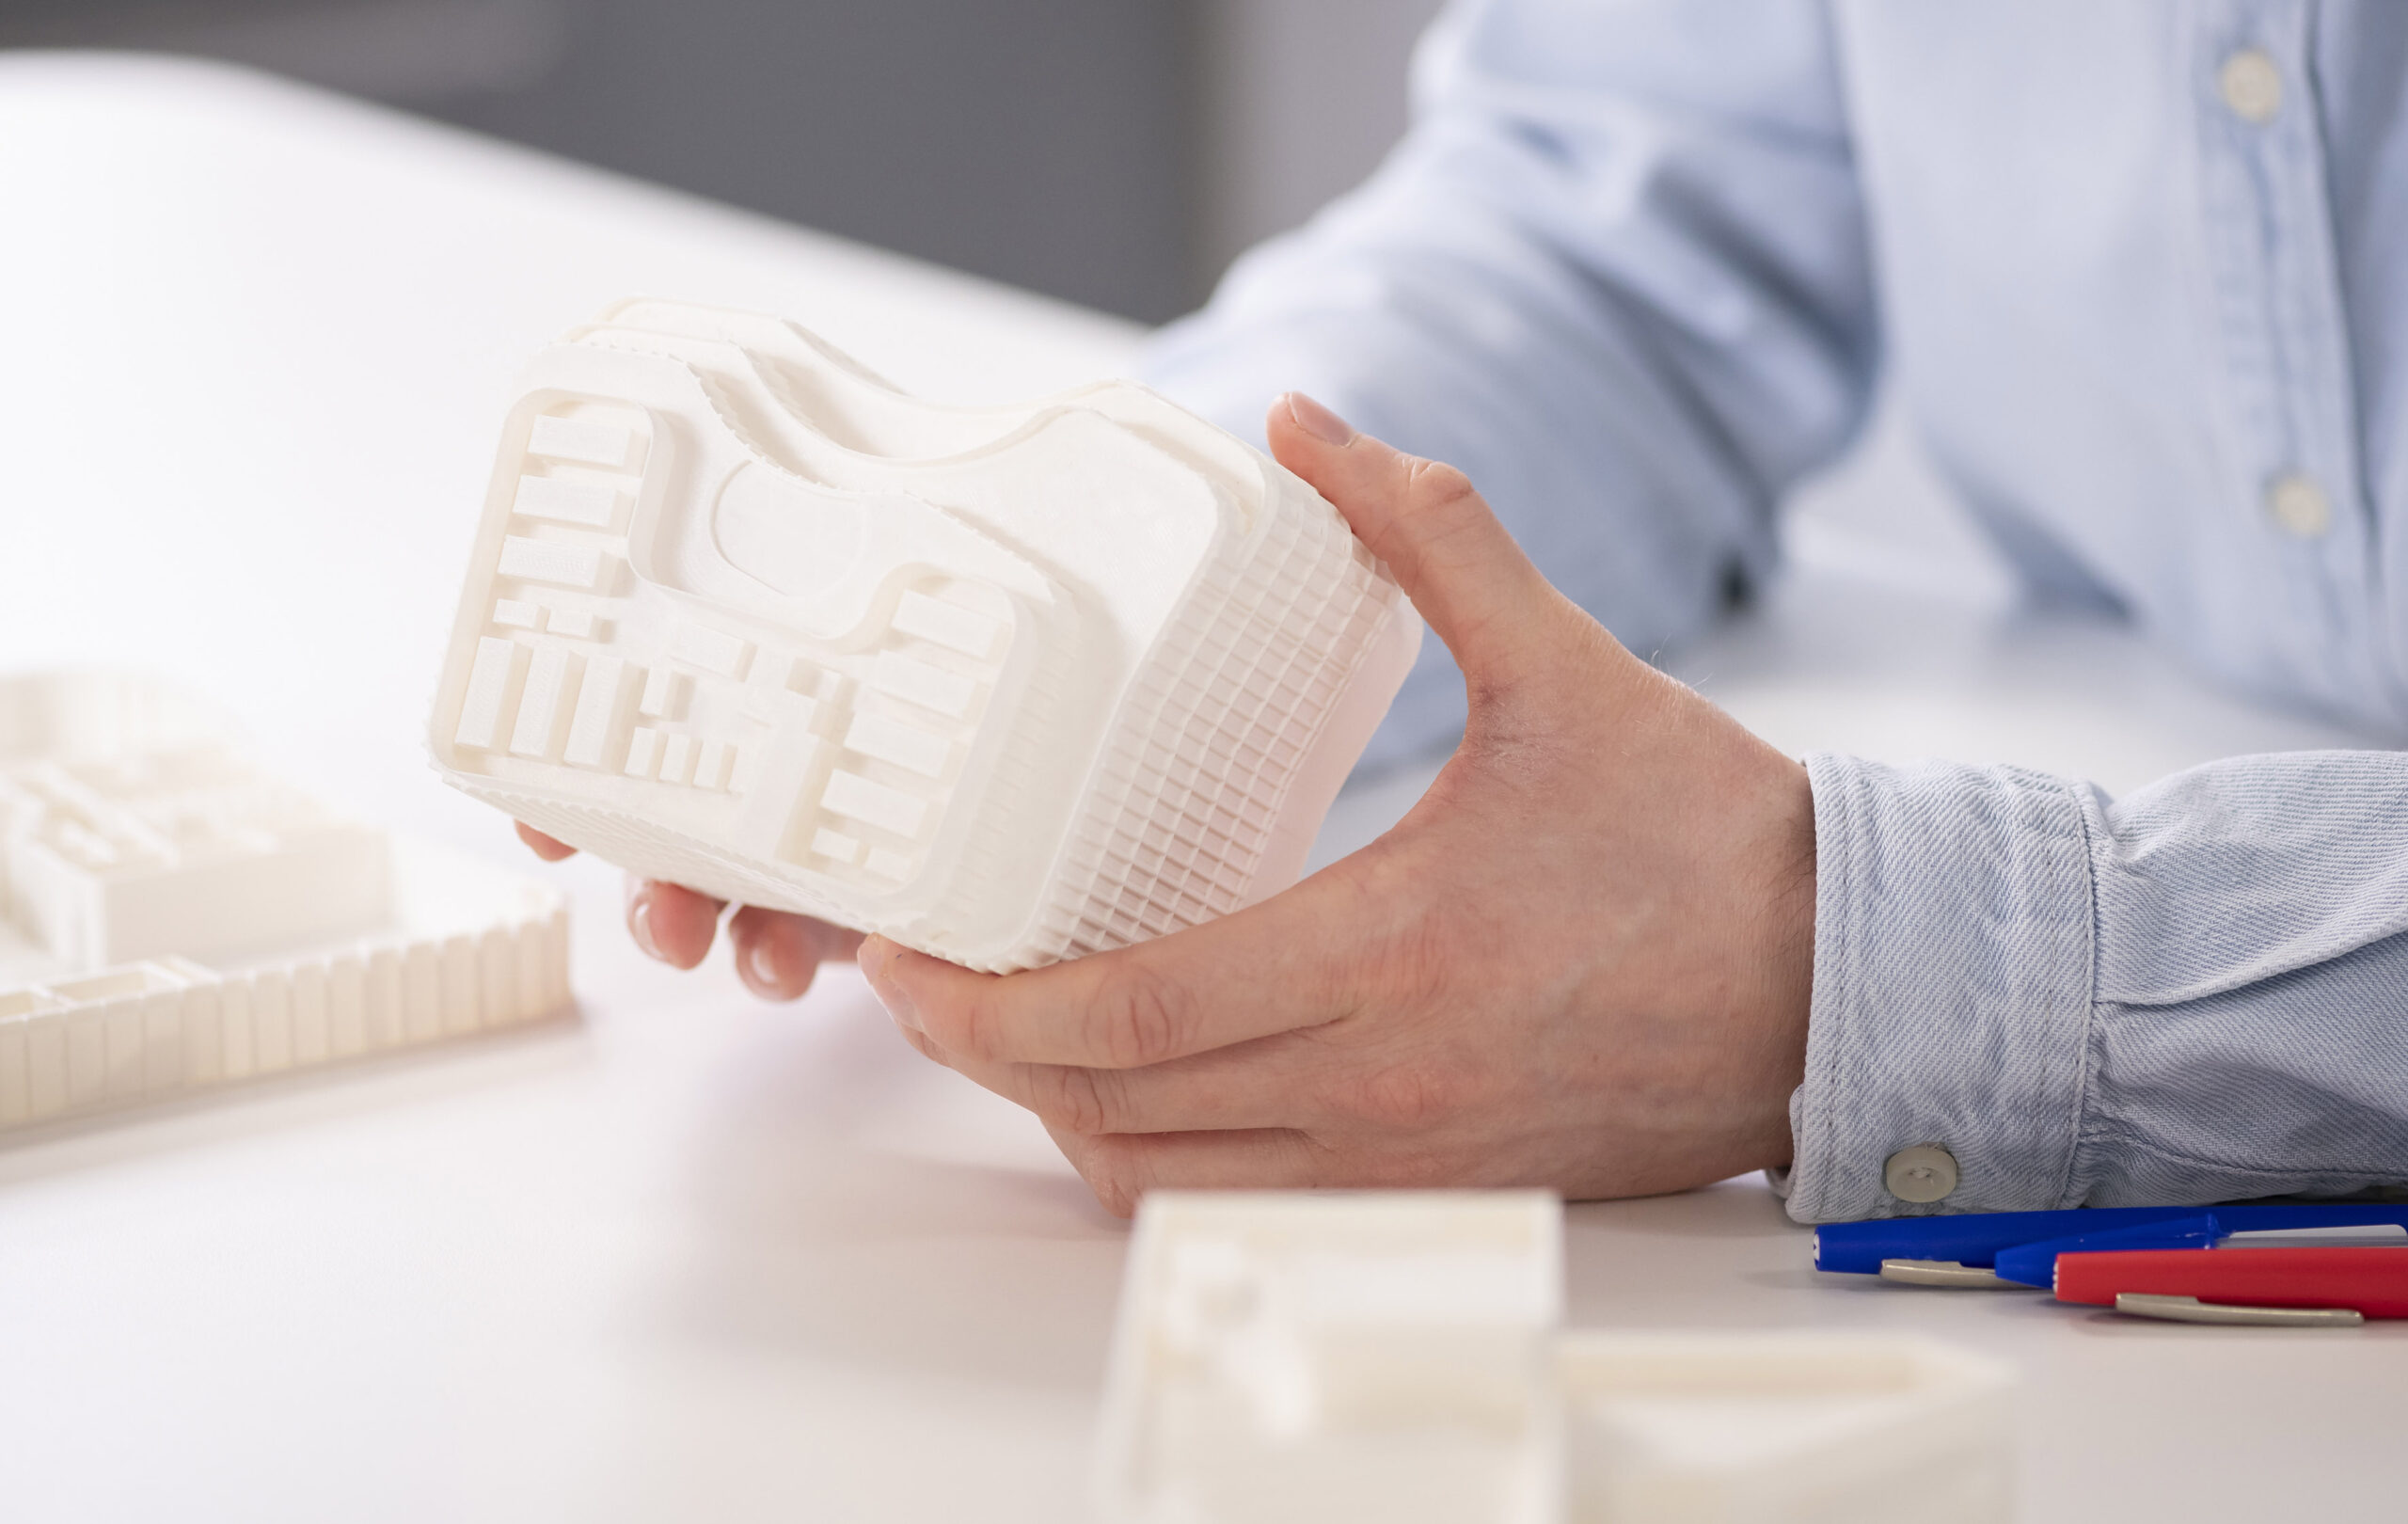 Staff holding a 3D printed model